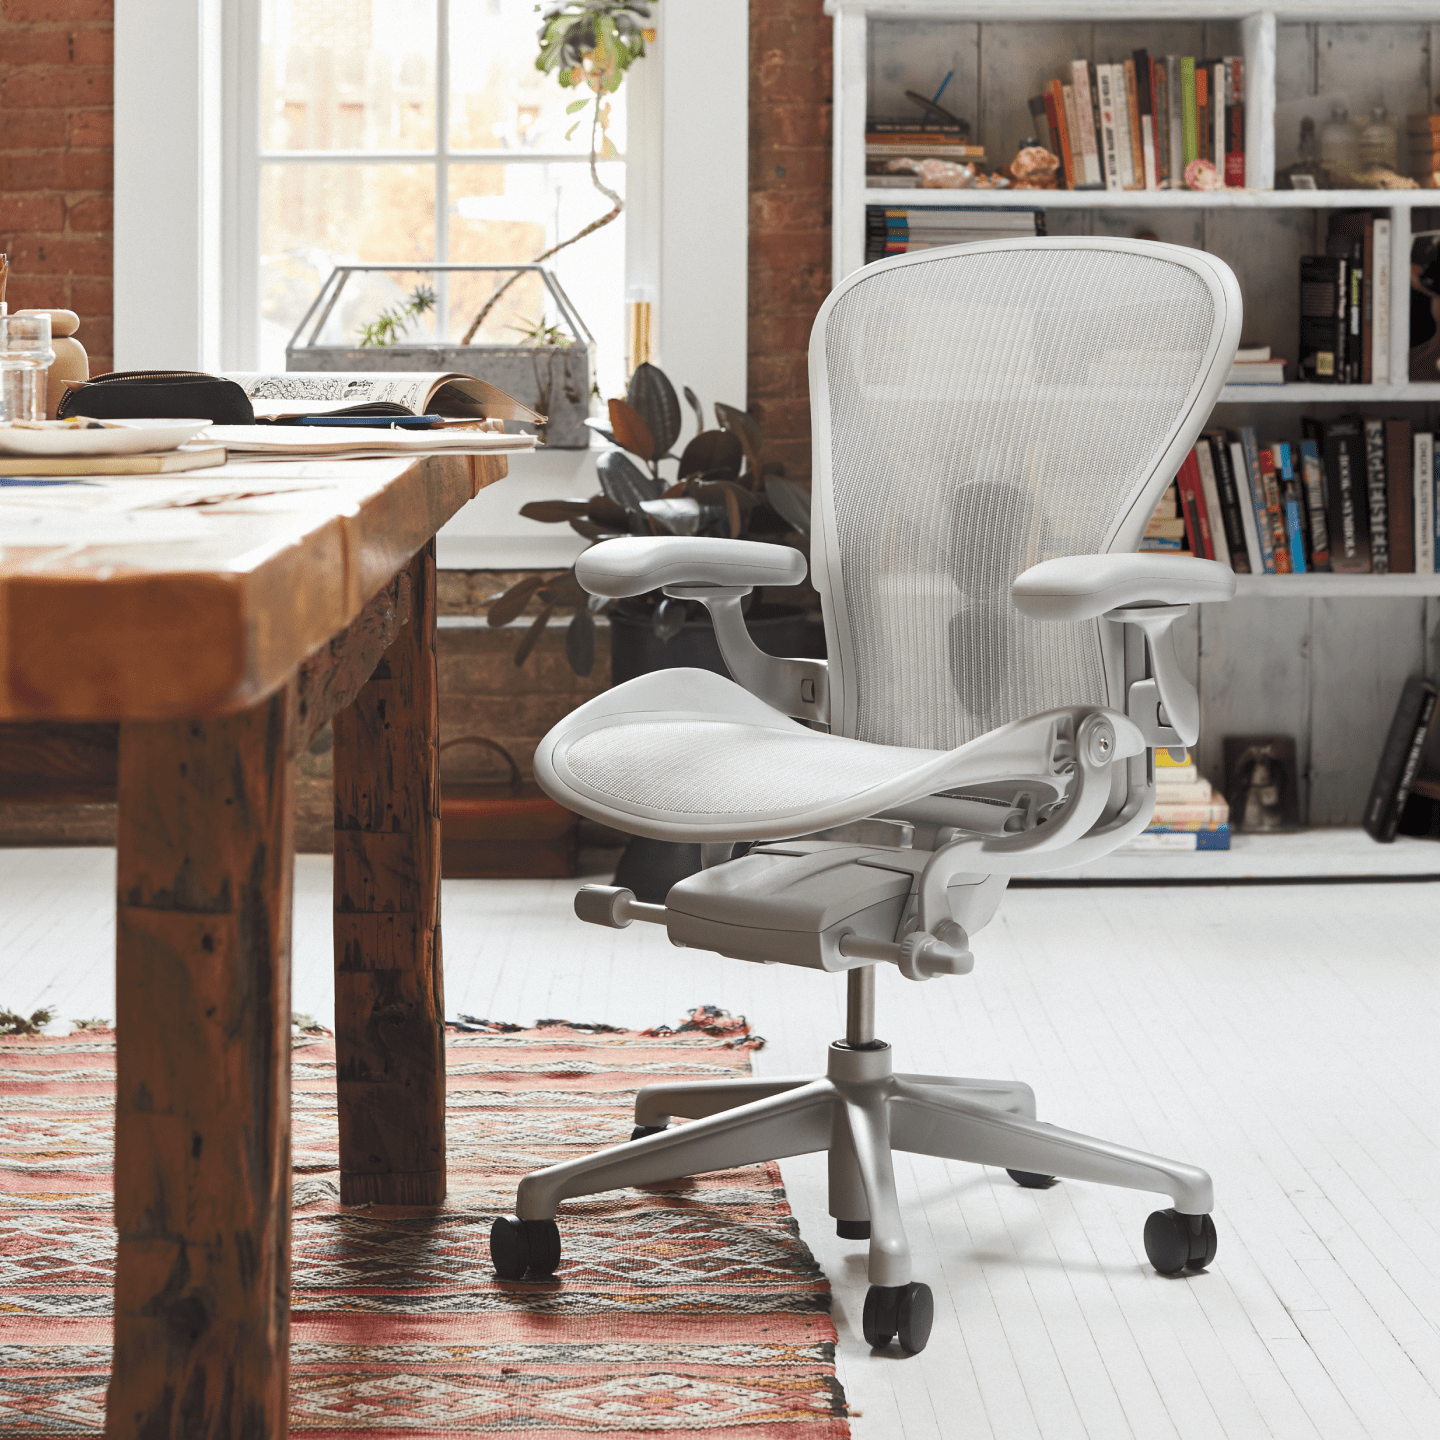 A Mineral Aeron Office Chair in a home office environment